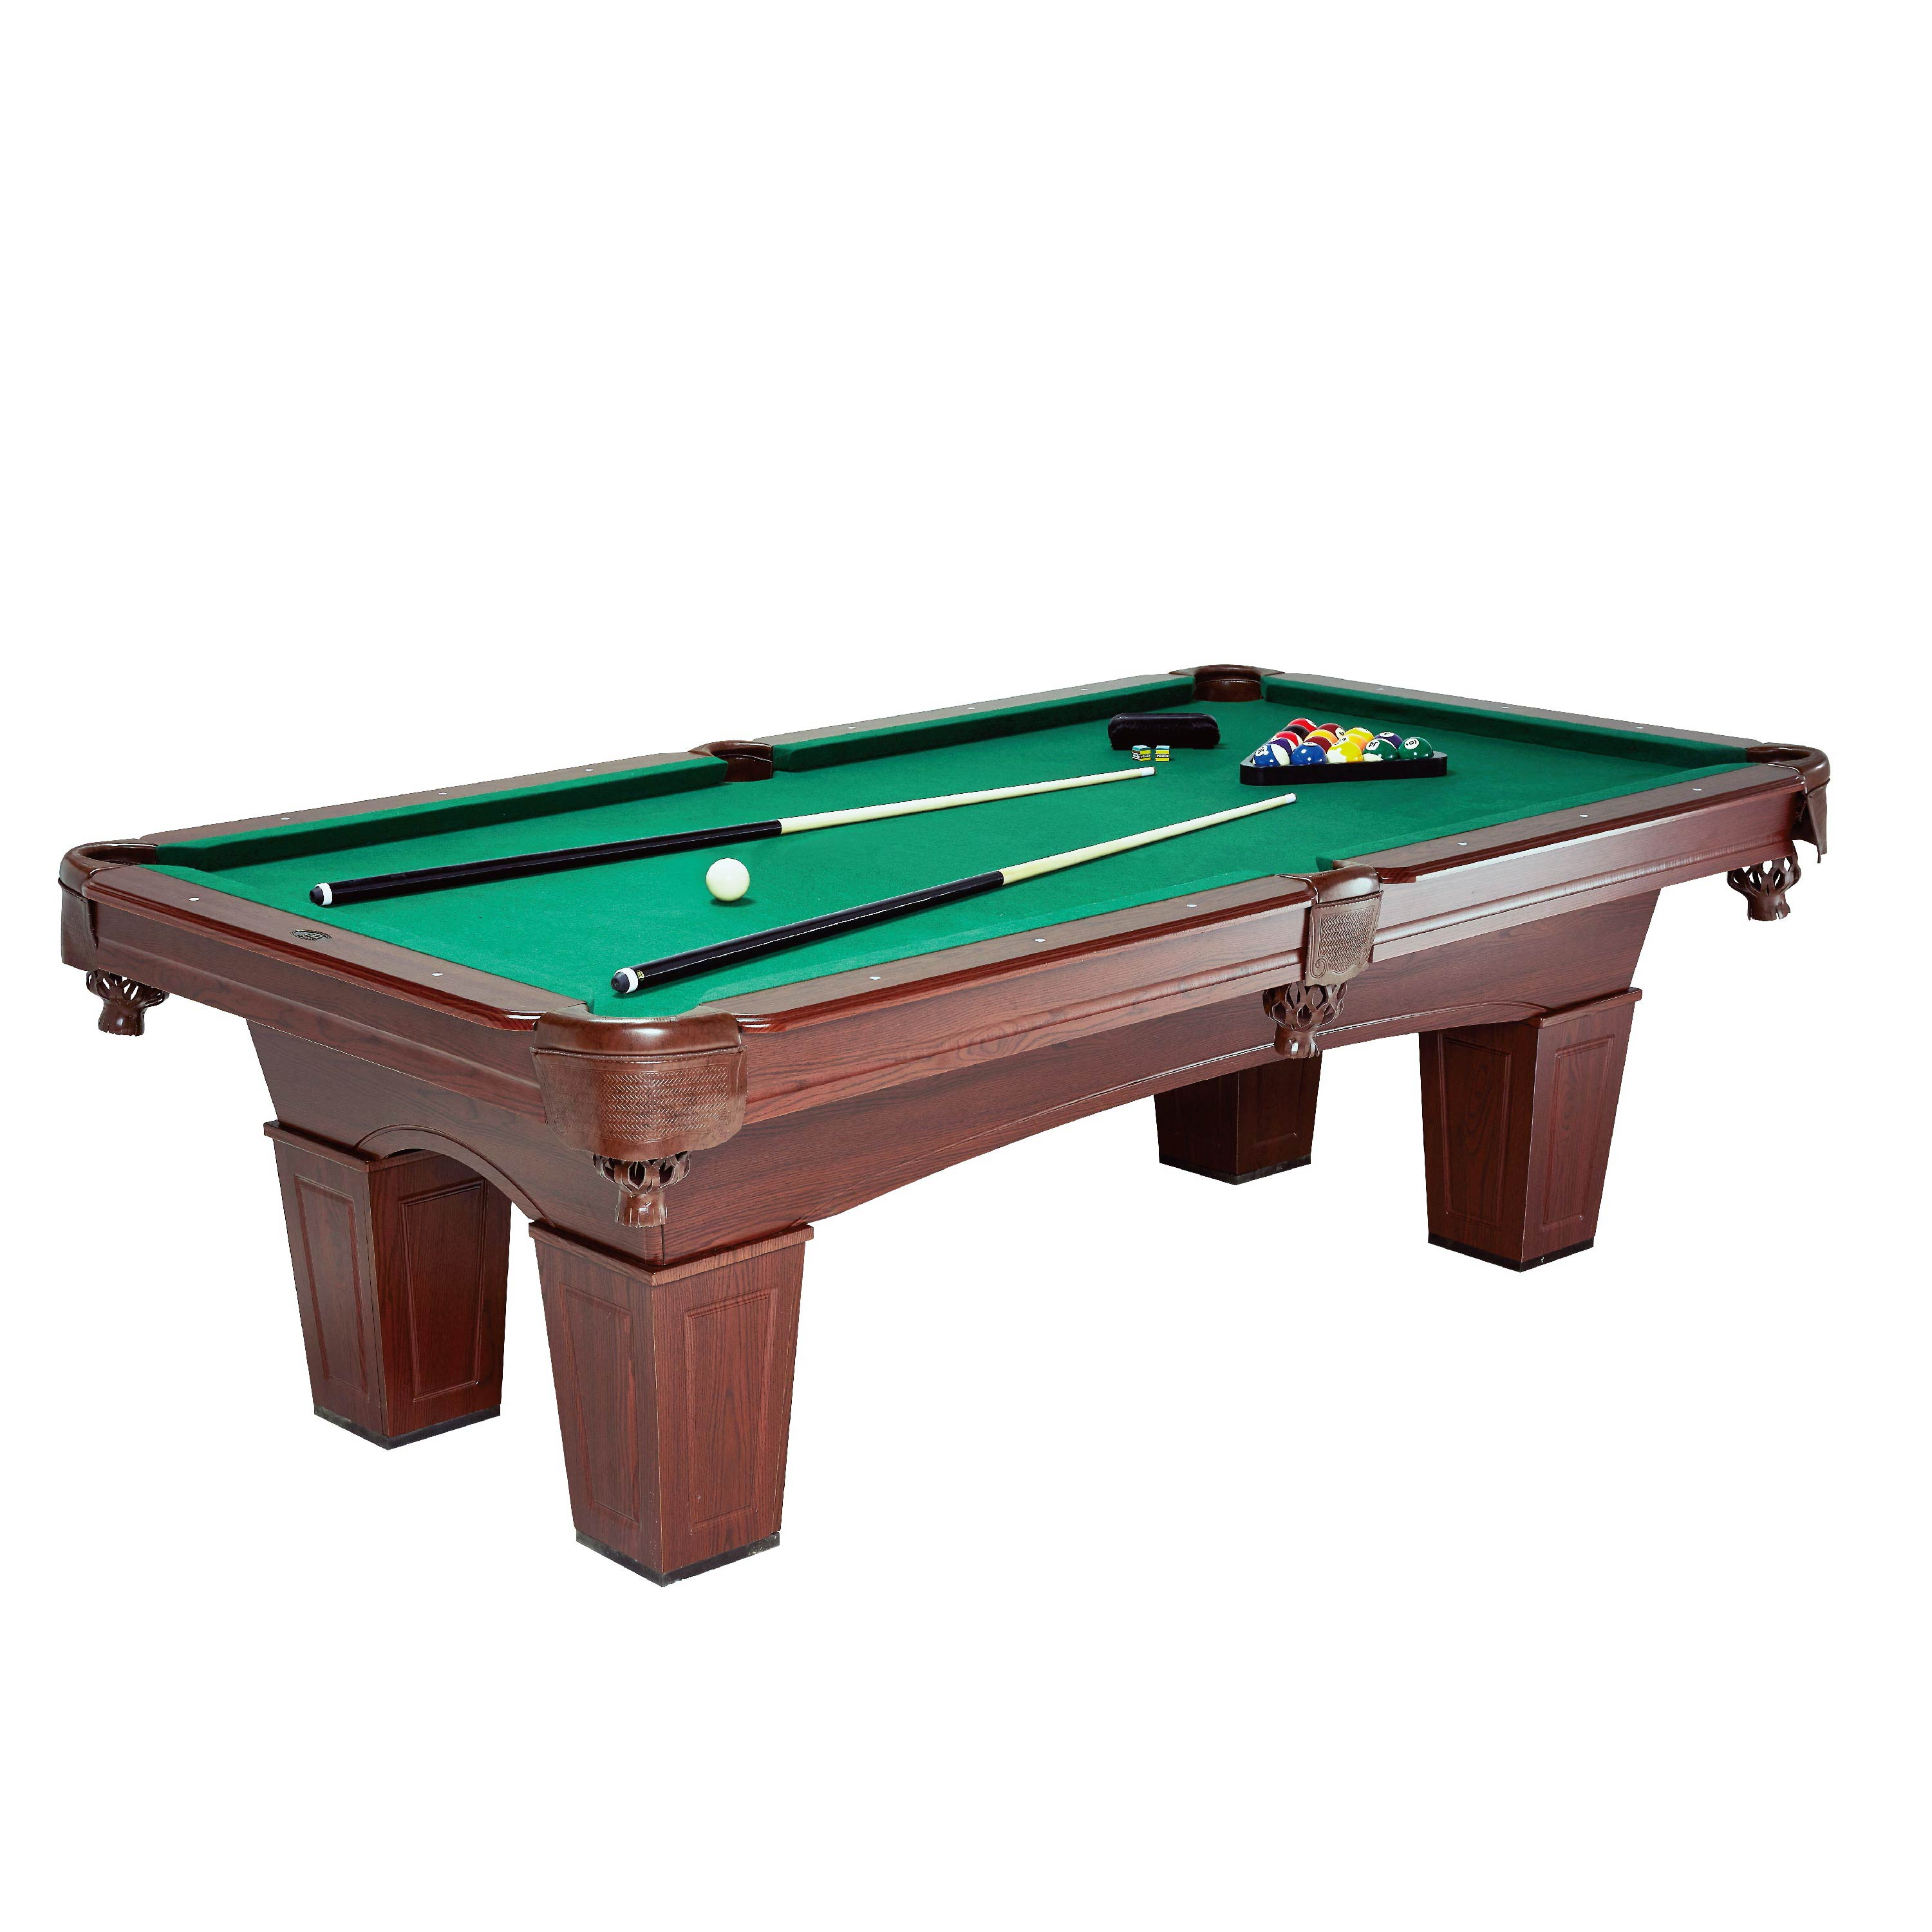 MD Sports Crestmont 8 Ft Billiard Pool Table, Includes Billiard Balls, Two  Cue Sticks